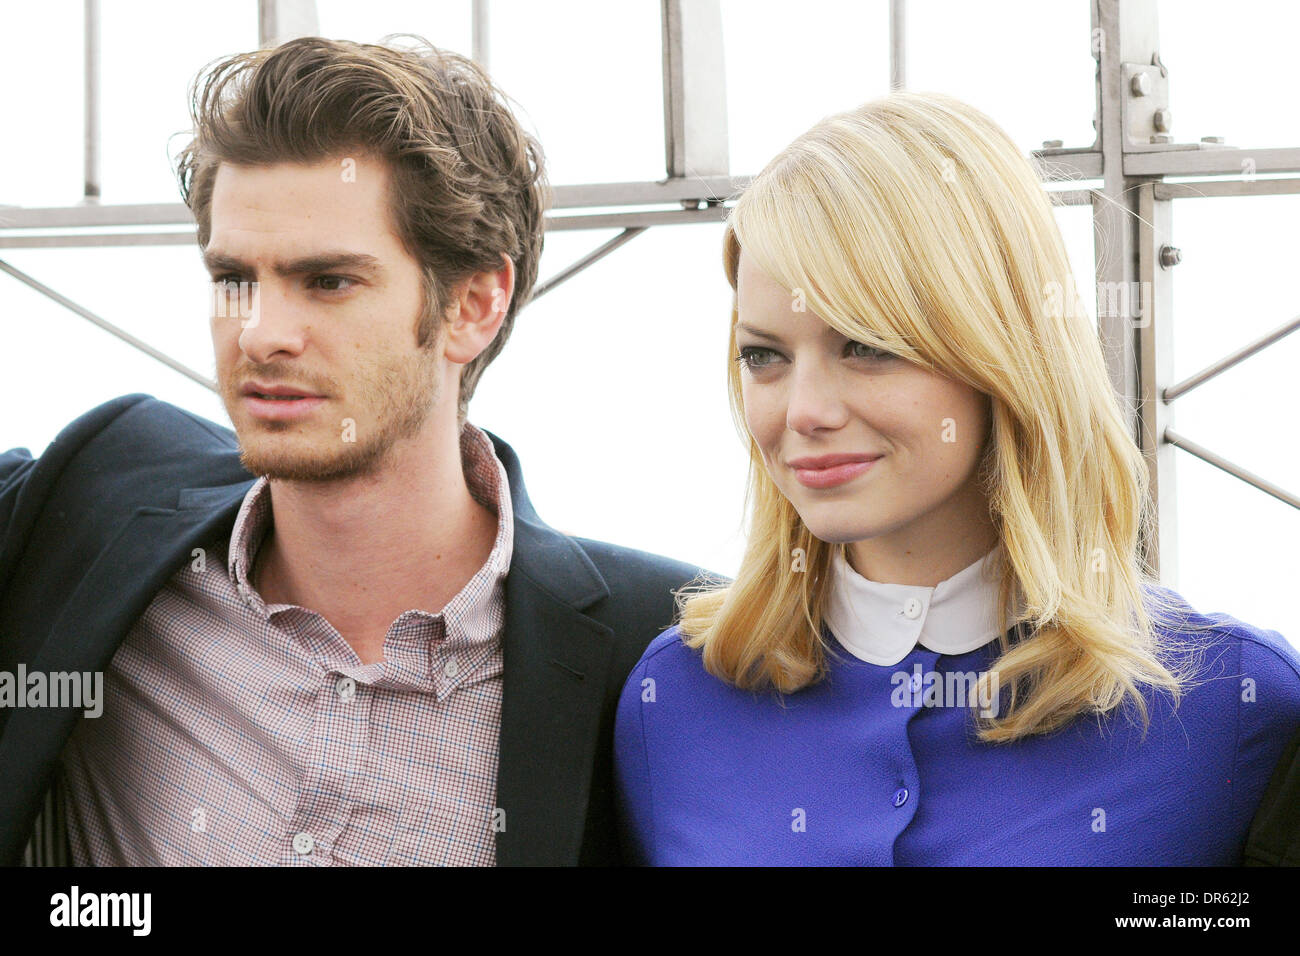 Andrew Garfield and Emma Stone The cast of 'The Amazing